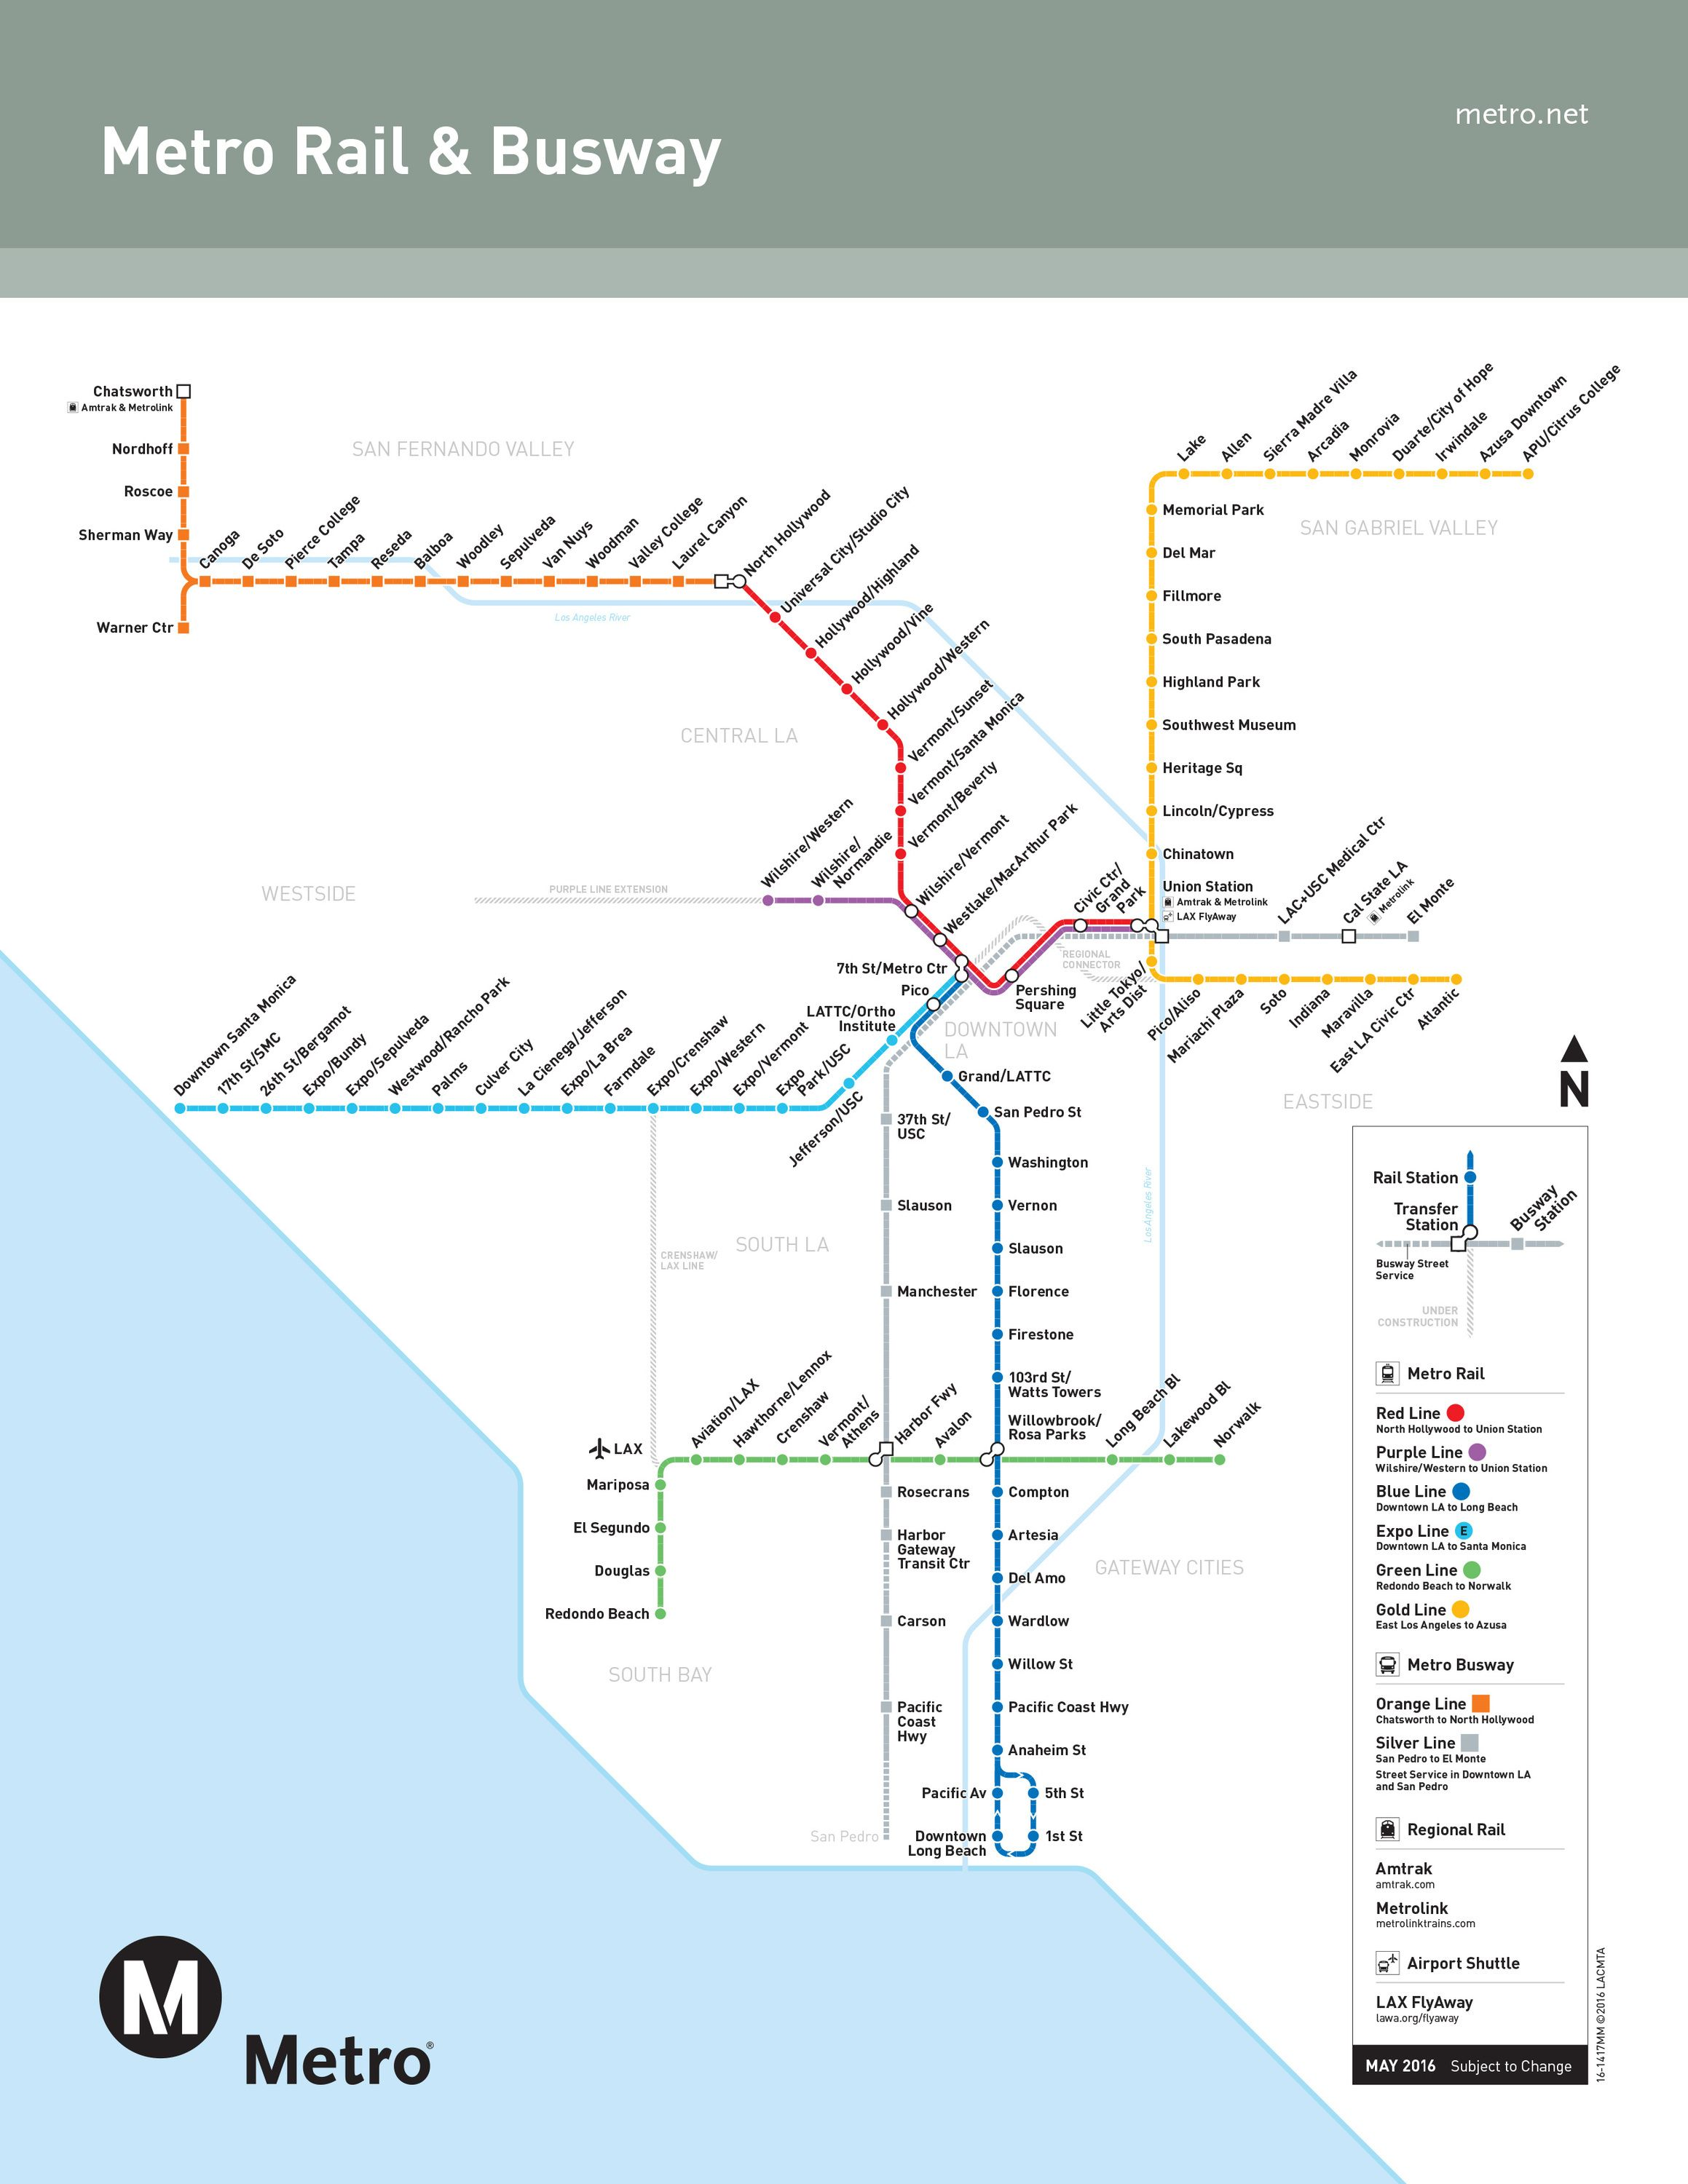 La Metro Rail Map A beginner's guide to Metro in 2019 | Staycation | La metro, Metro